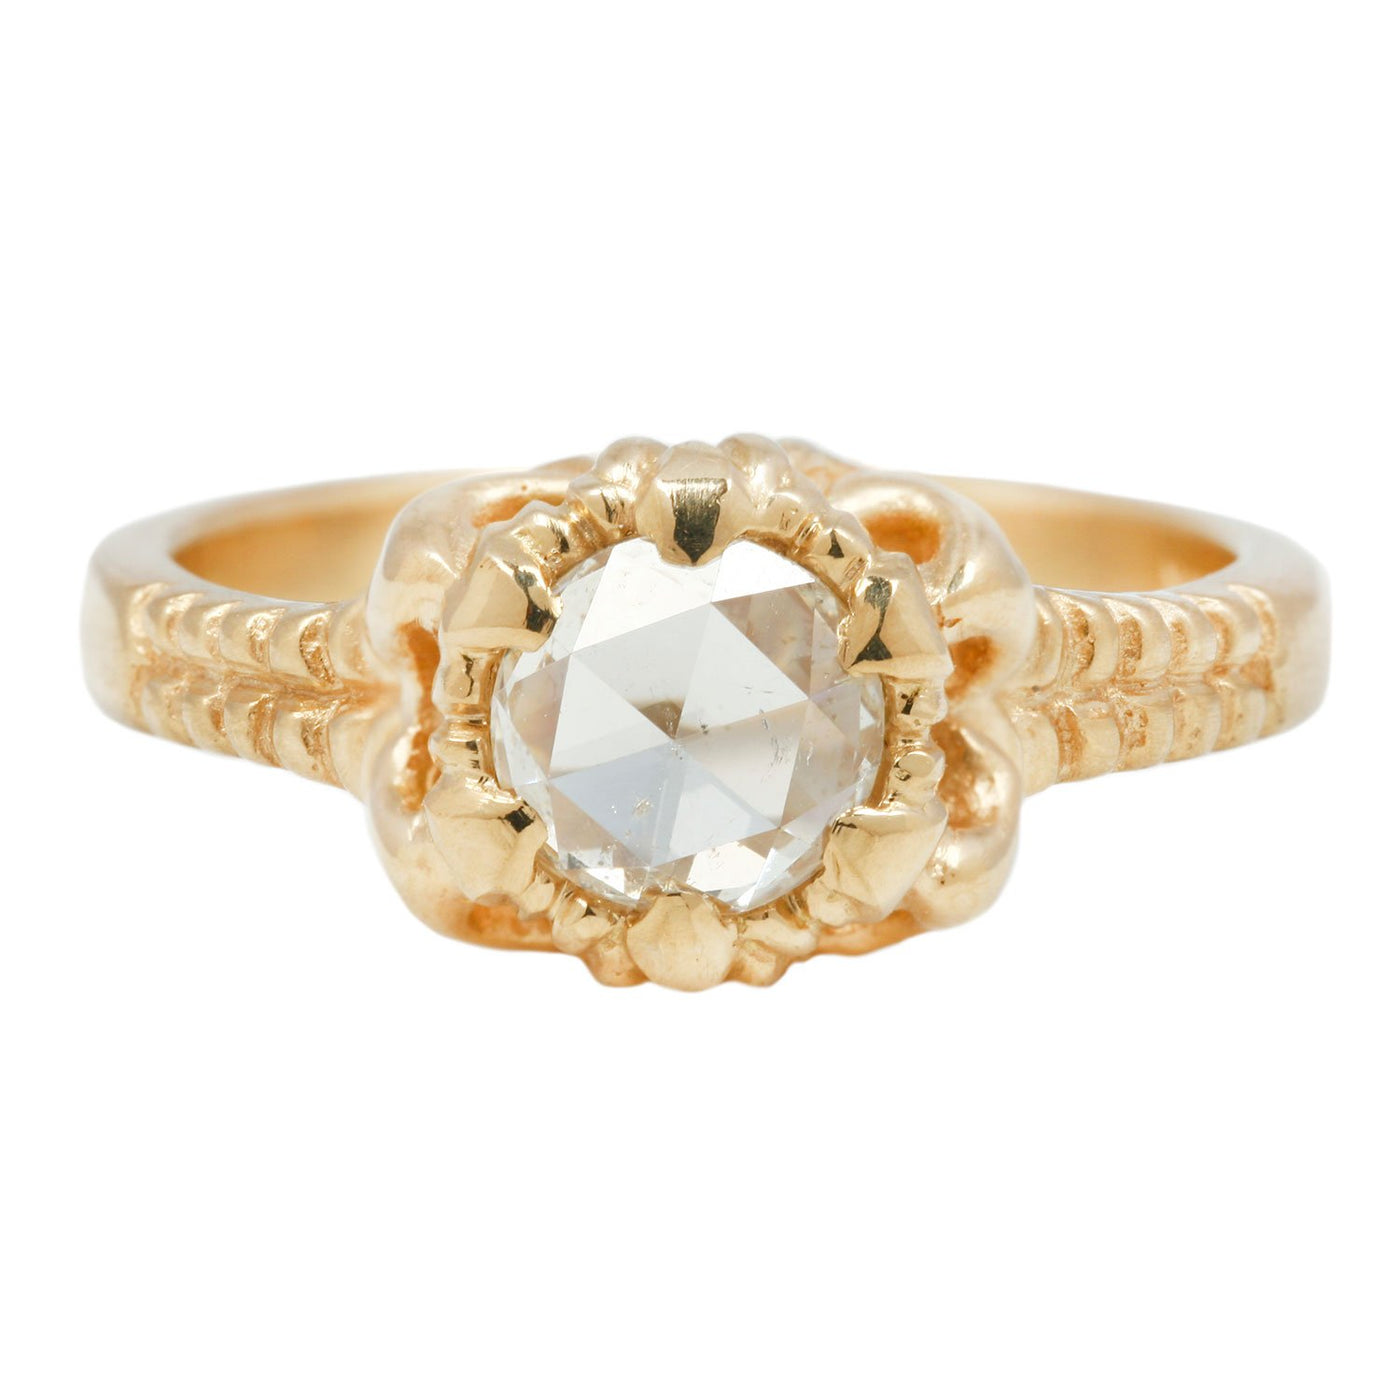 Susan Highsmith Diamond Solitaire Lilith Ring